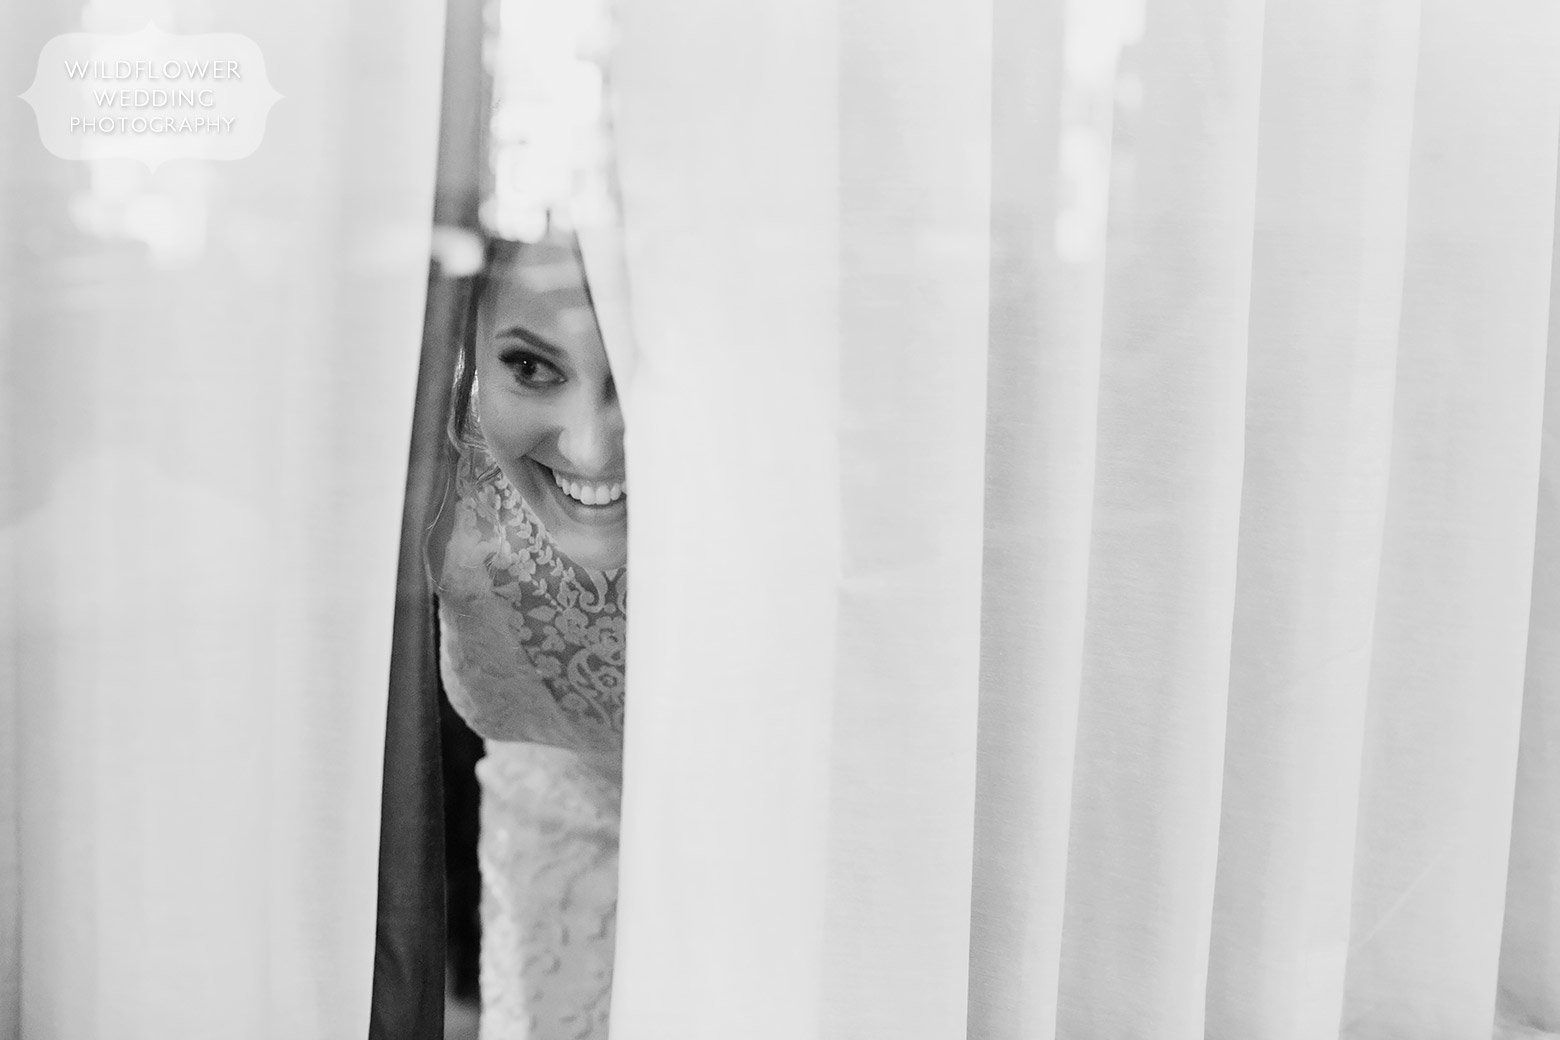 Candid wedding photography of bride looking out of curtains at guests.